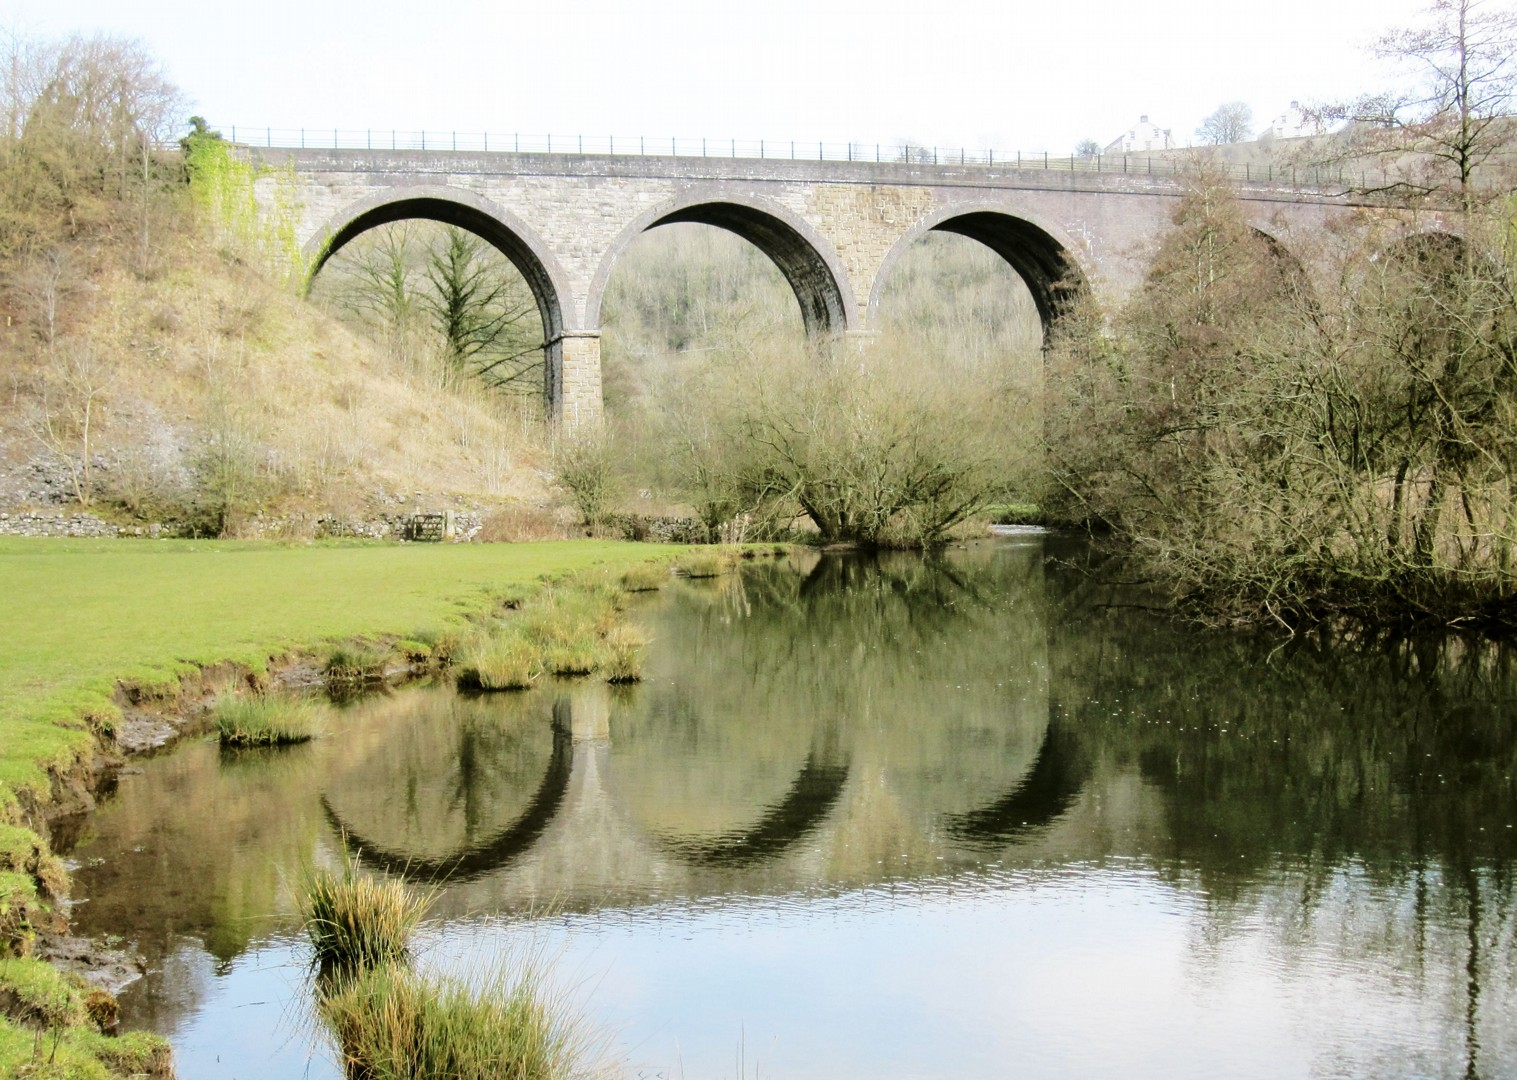 IMG_4465.JPG - UK - Derbyshire Dales - Dovedale - Guided Leisure Cycling Holiday - Leisure Cycling